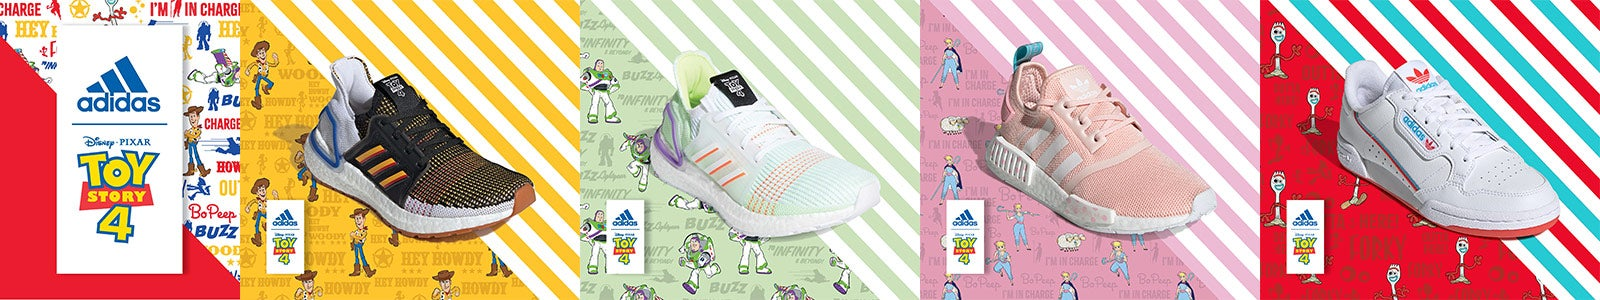 adidas Toy Story collection | Champs Sports